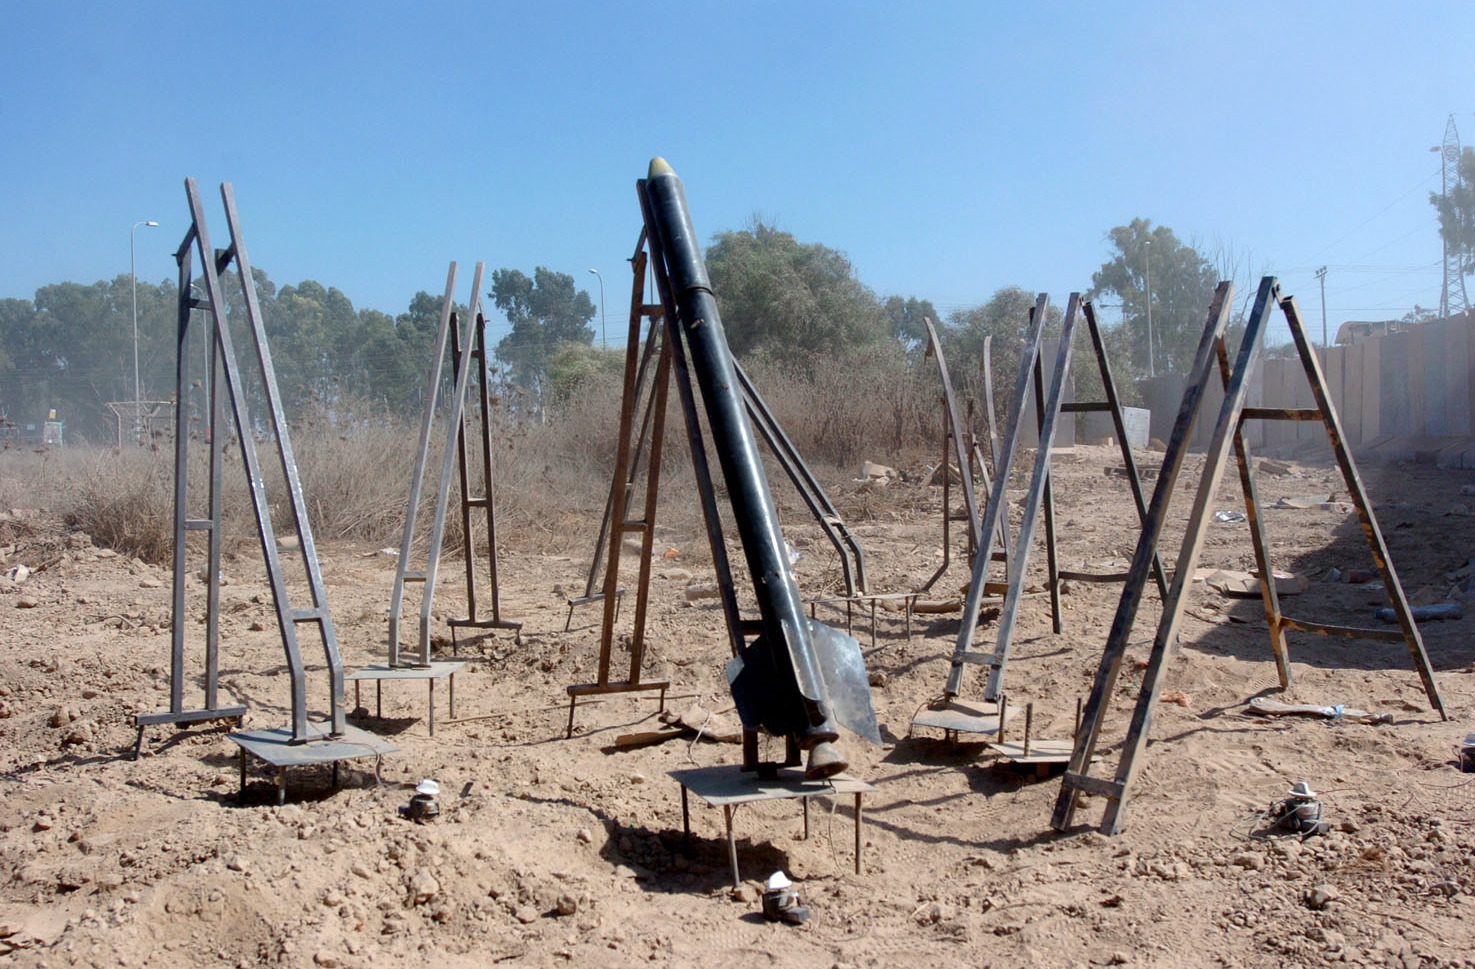 Typical rockets used by Hamas